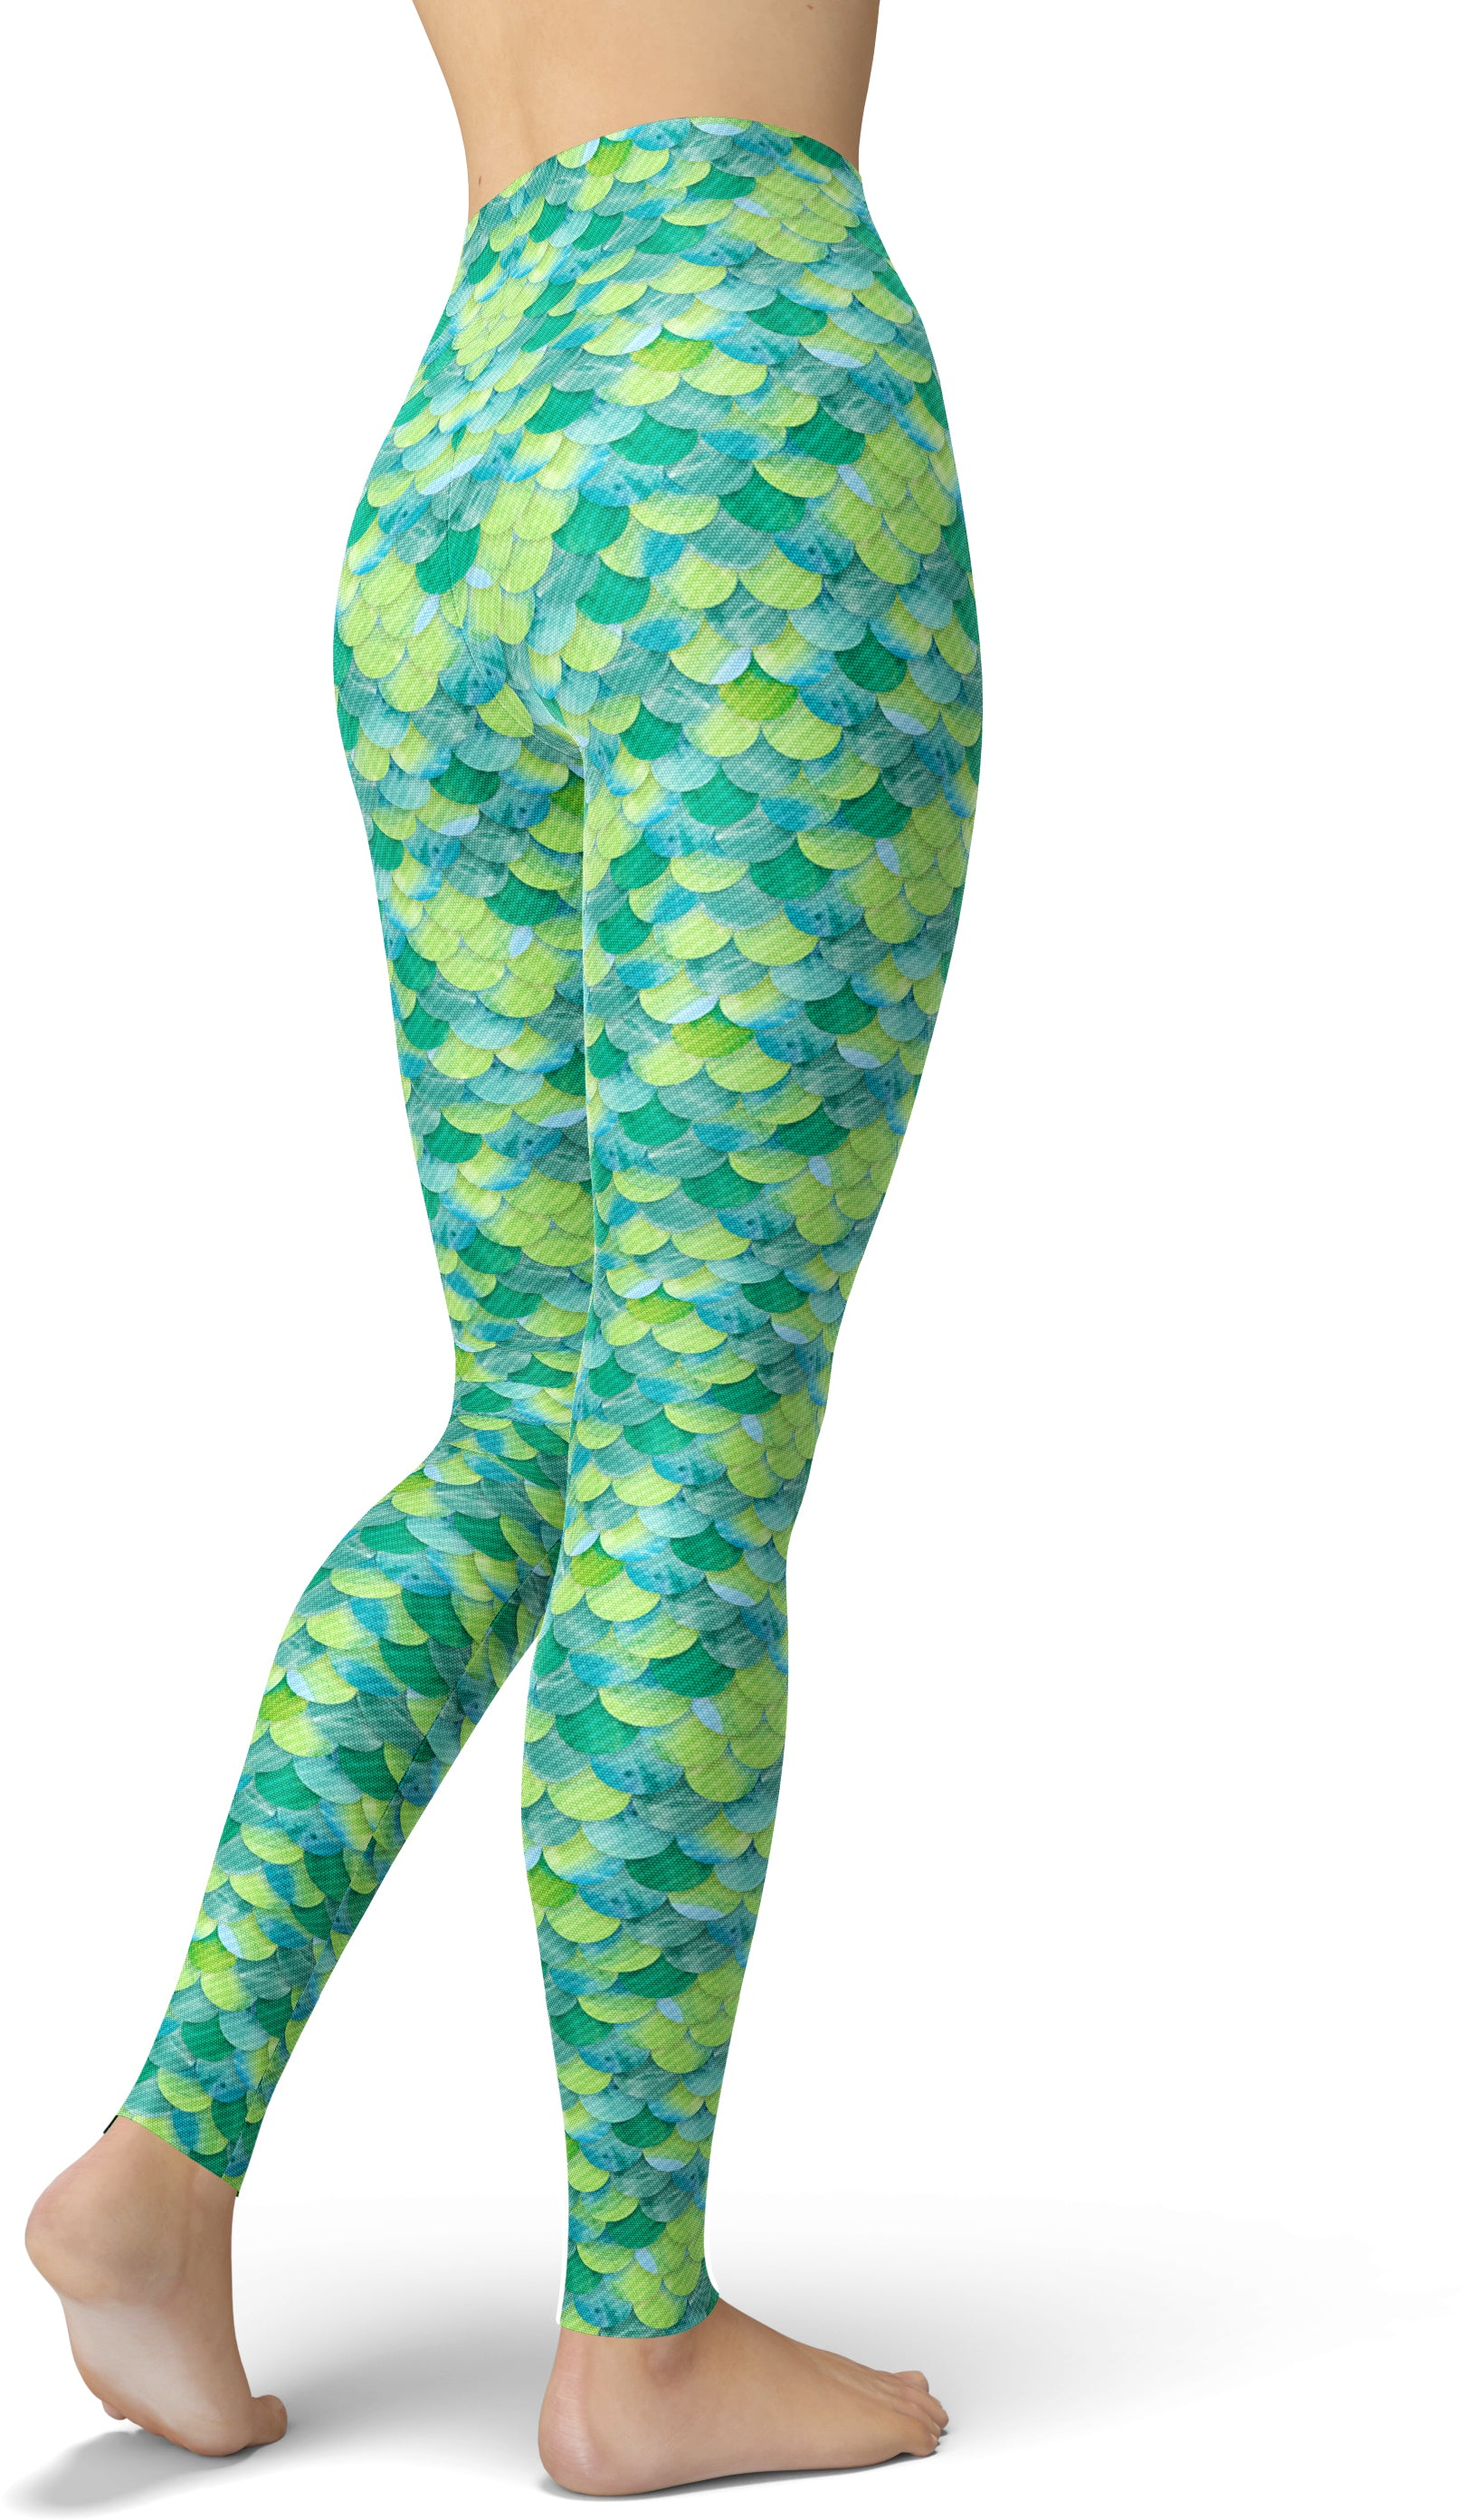 Flounder Fishcale Leggings